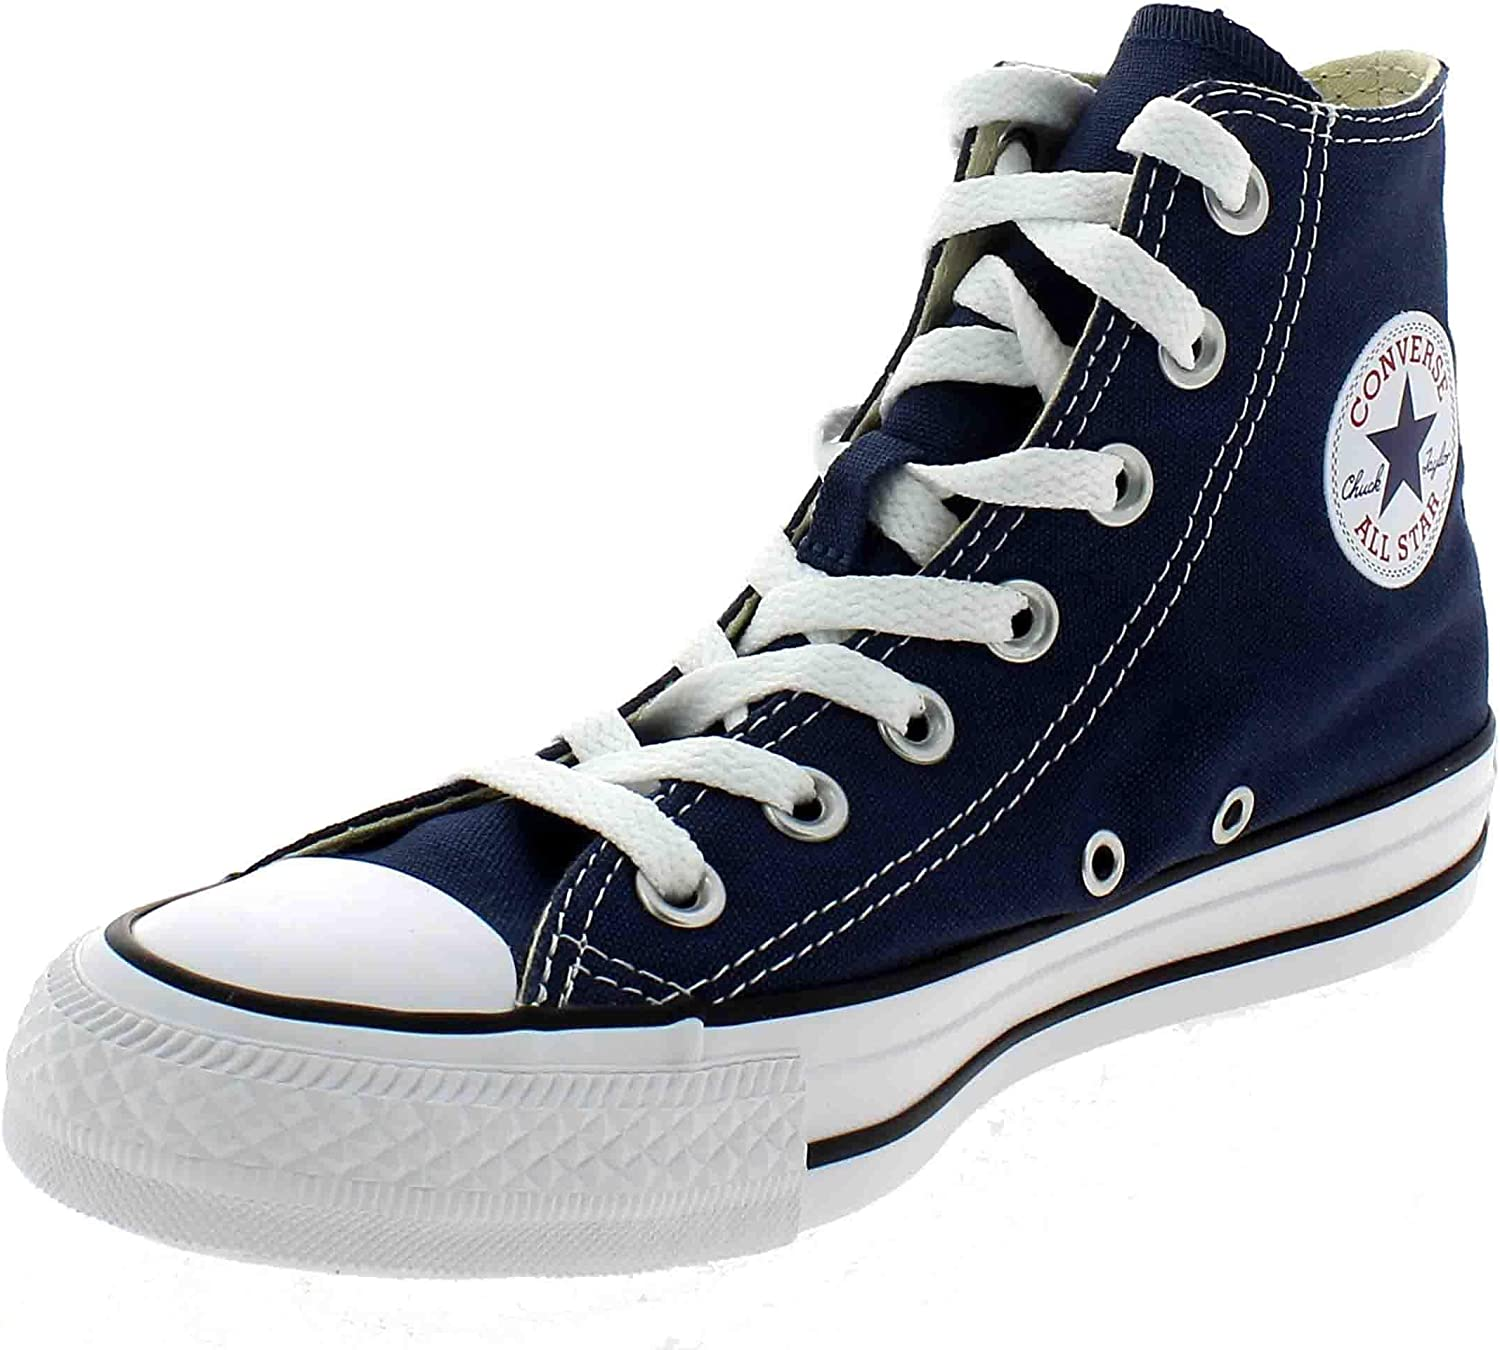 | Converse Chuck Taylor All Star High Top Sneaker | Fashion Sneakers